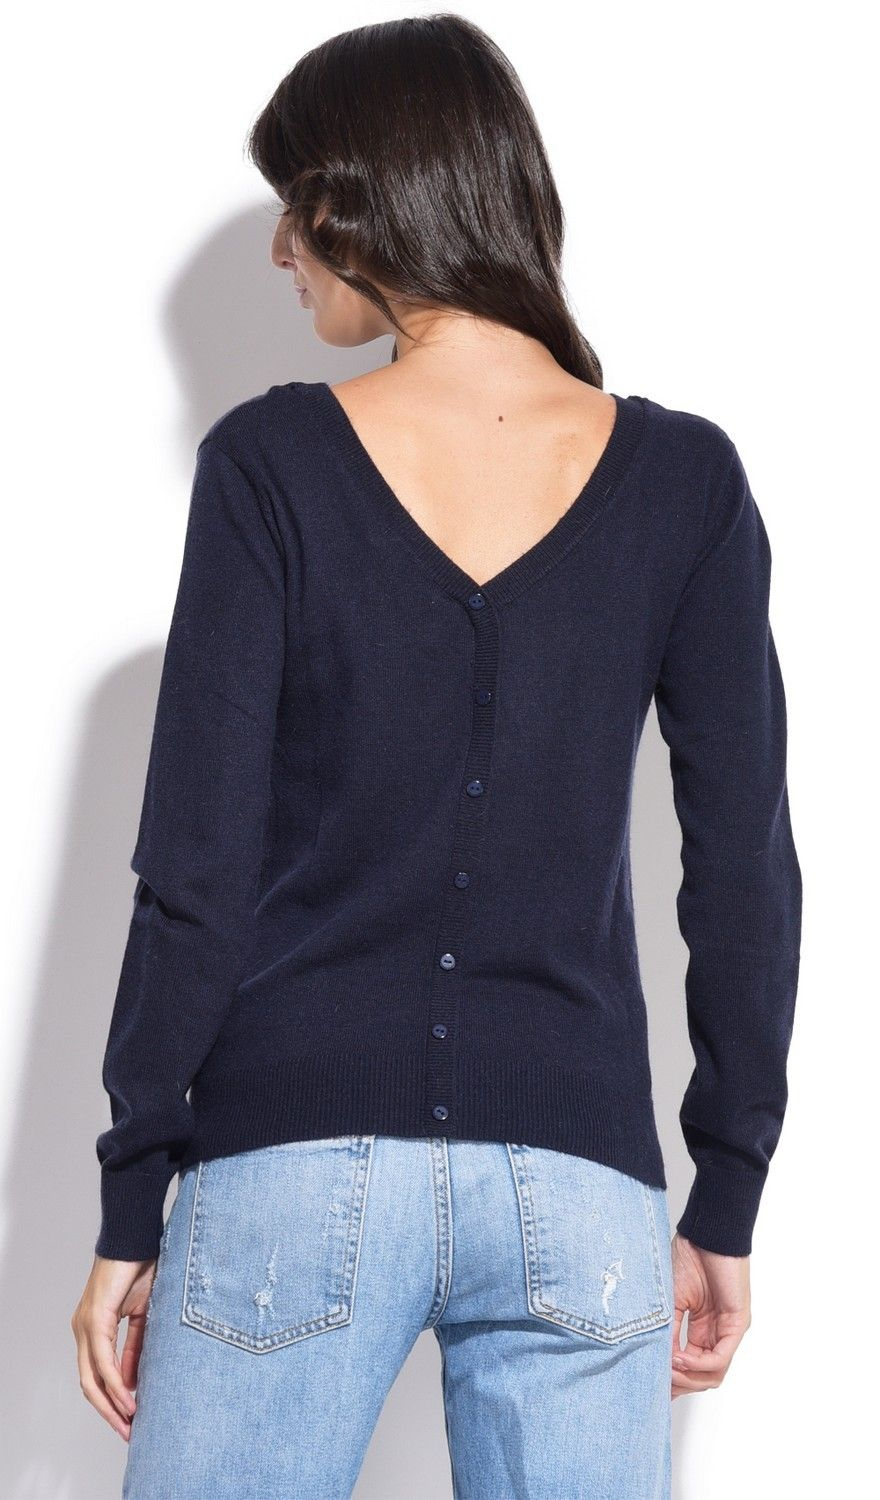 Assuili Boat Neck Buttoned Back Sweater in Navy